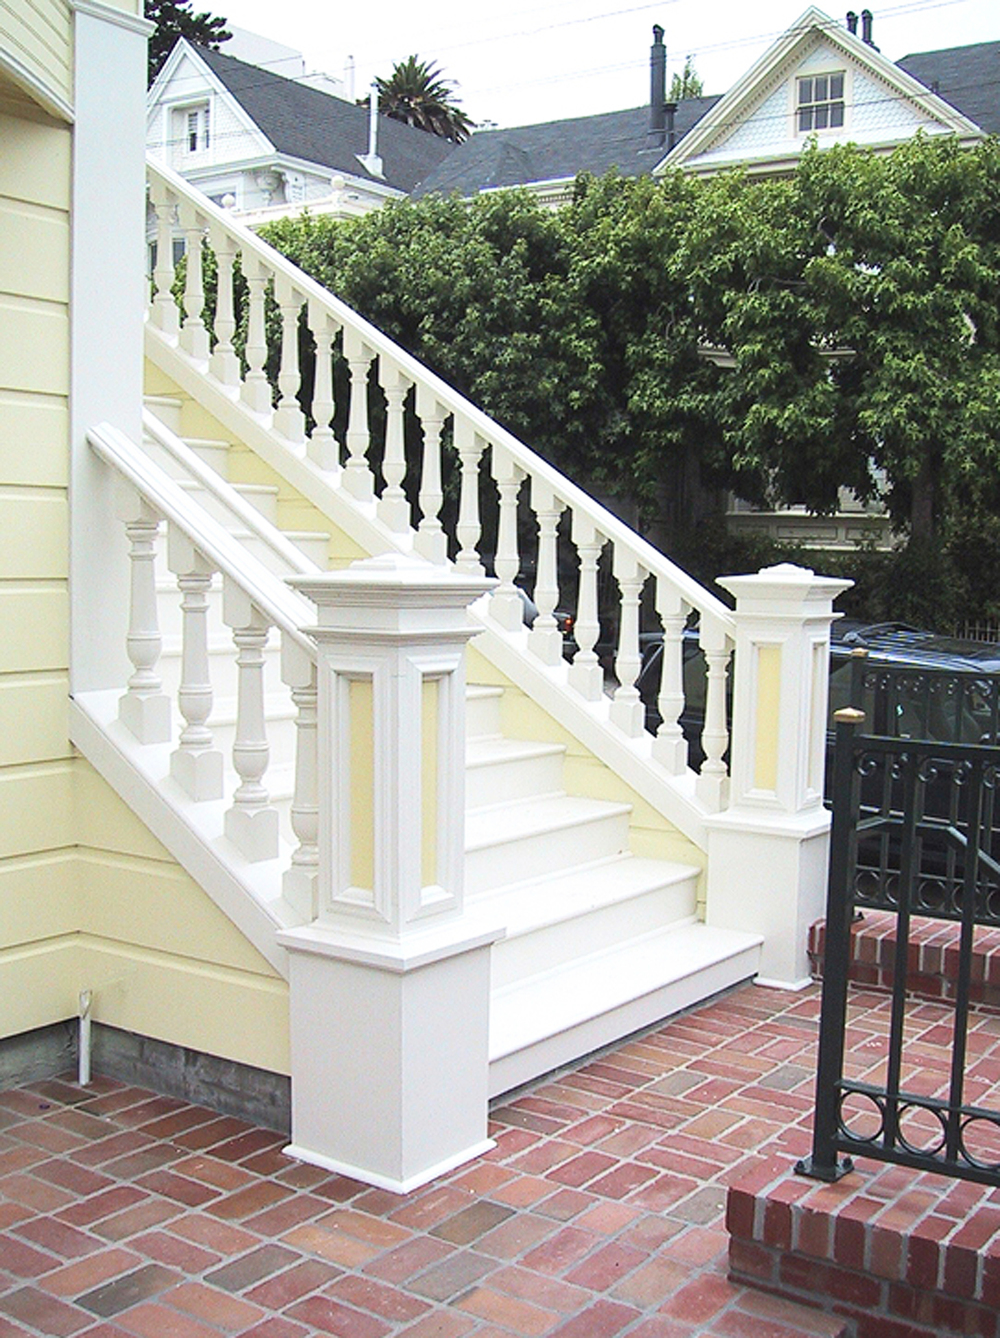 3 - 2127 New Front Stair.jpg